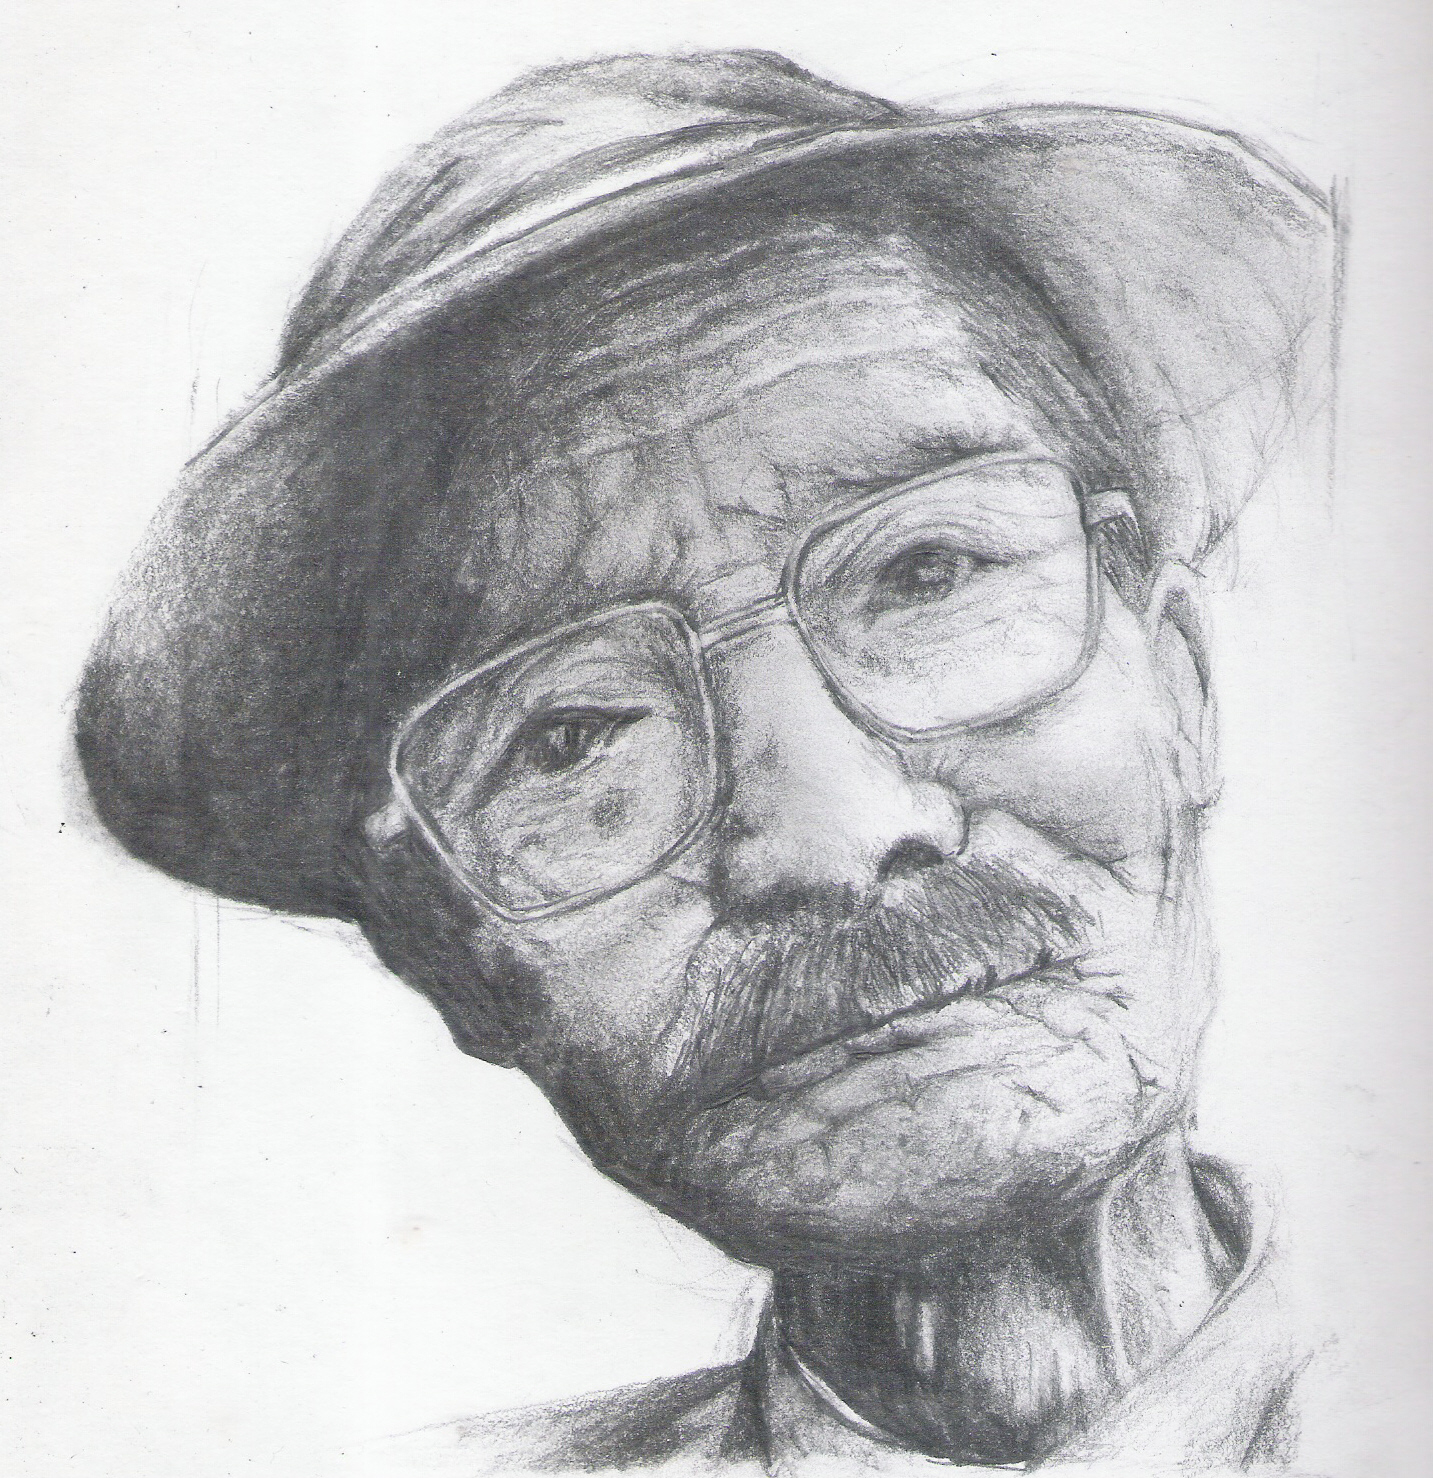 Traditional portrait drawing